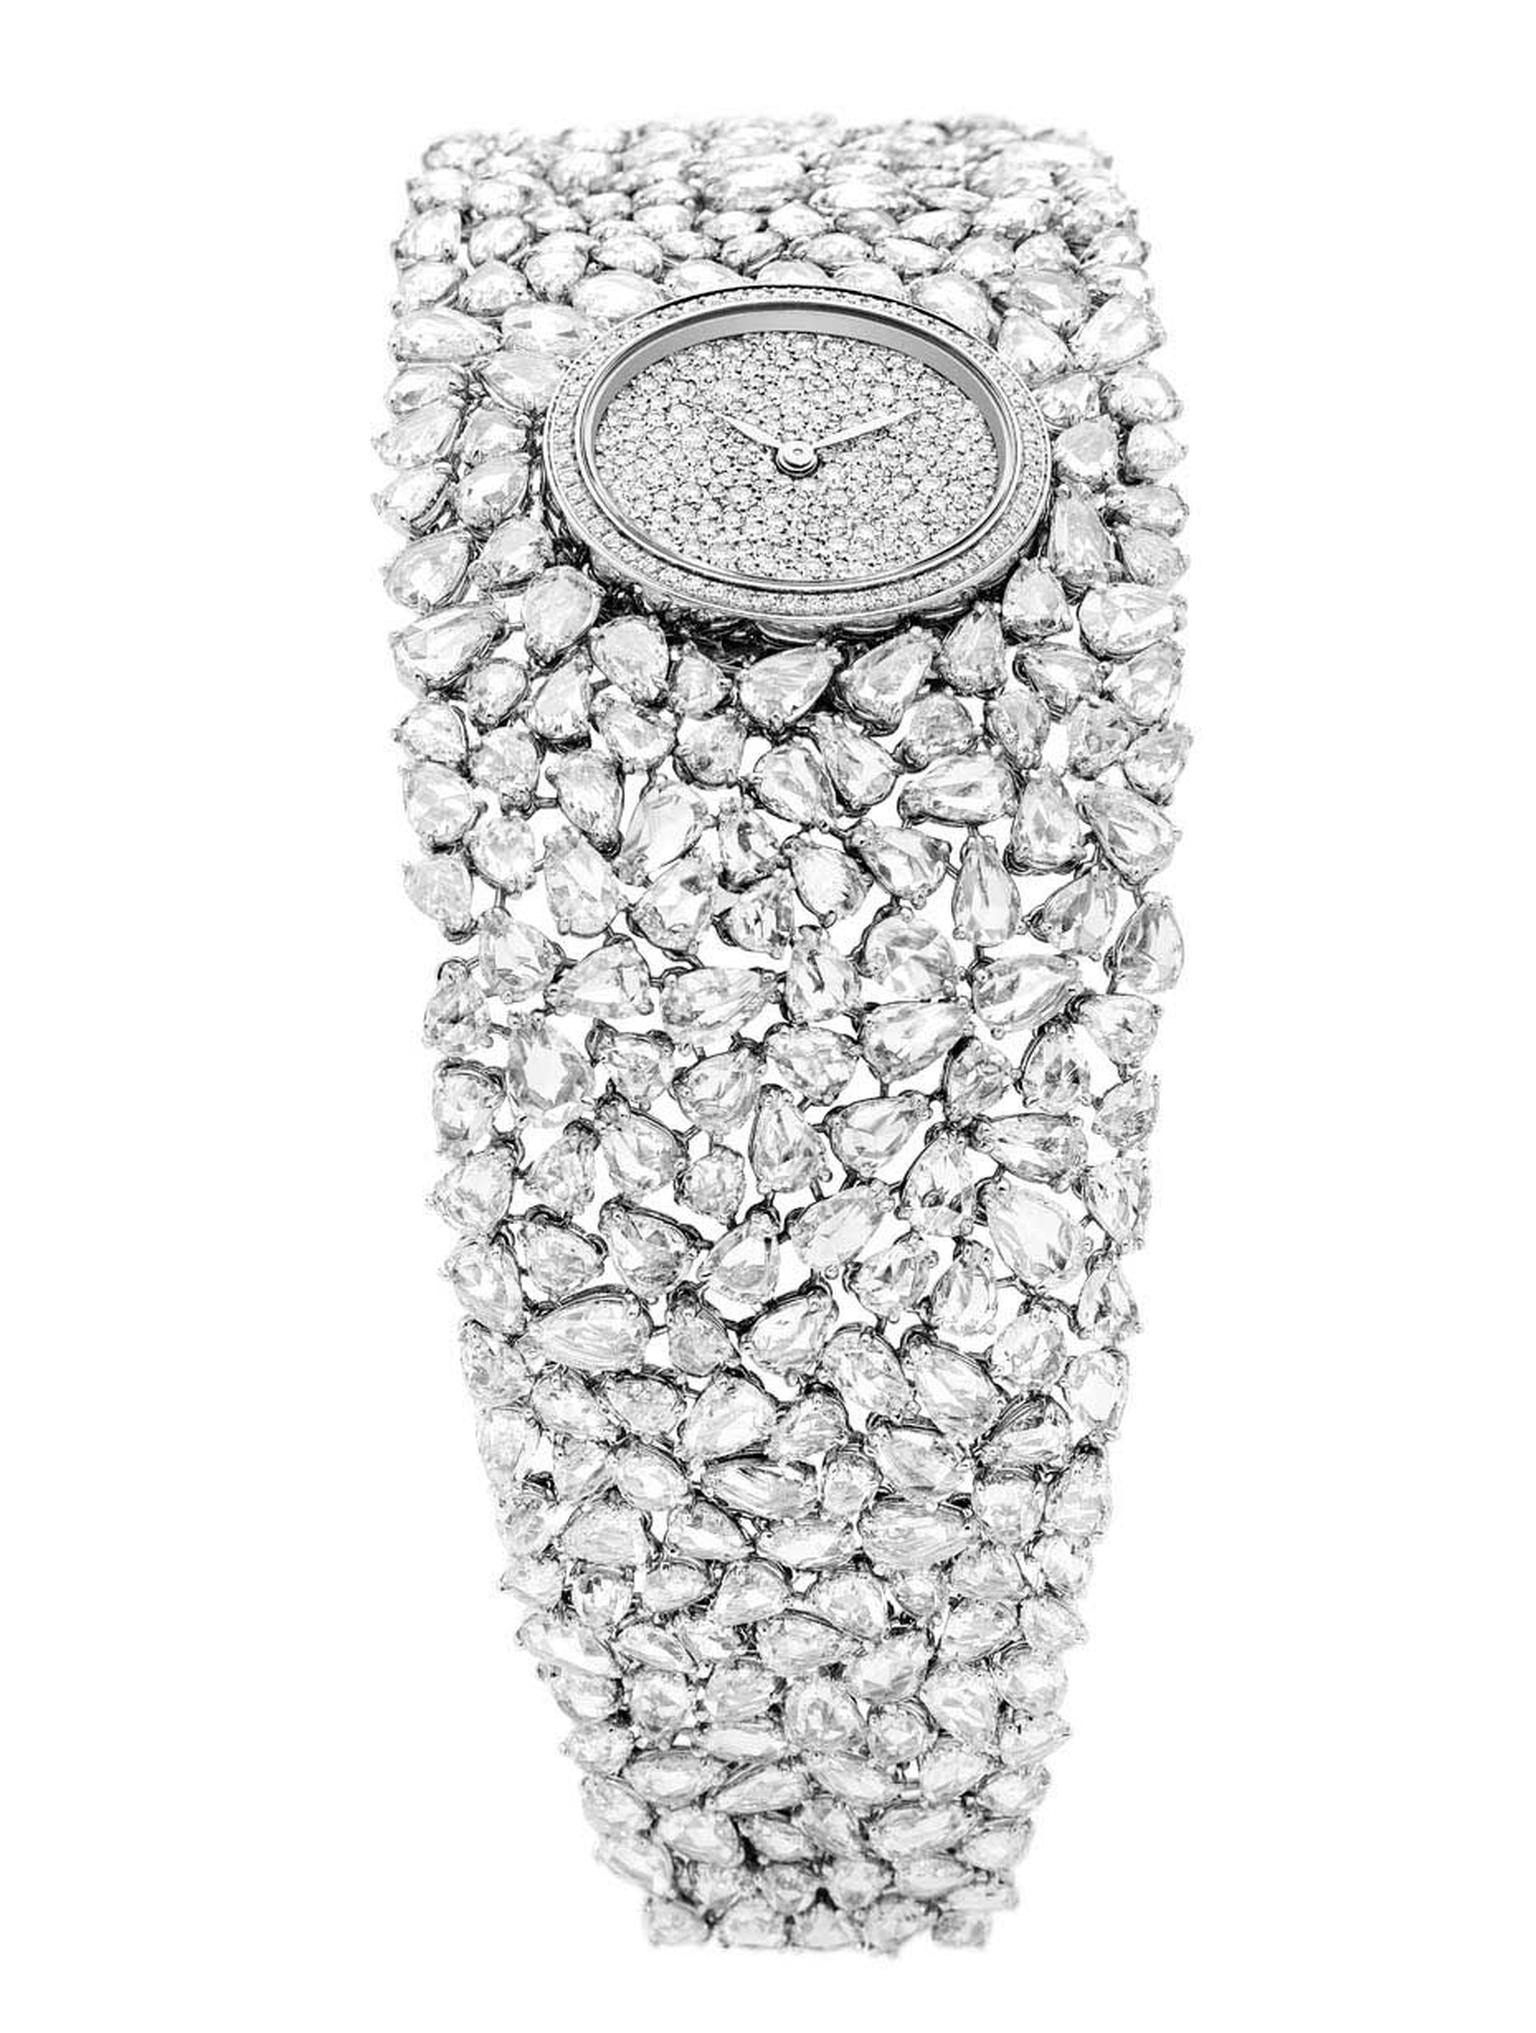 DeLaneau Grace Pear Diamonds jewellery watch in white gold, set with 351 pear-cut diamonds on the bracelet and a further 268 diamonds on the dial and case.